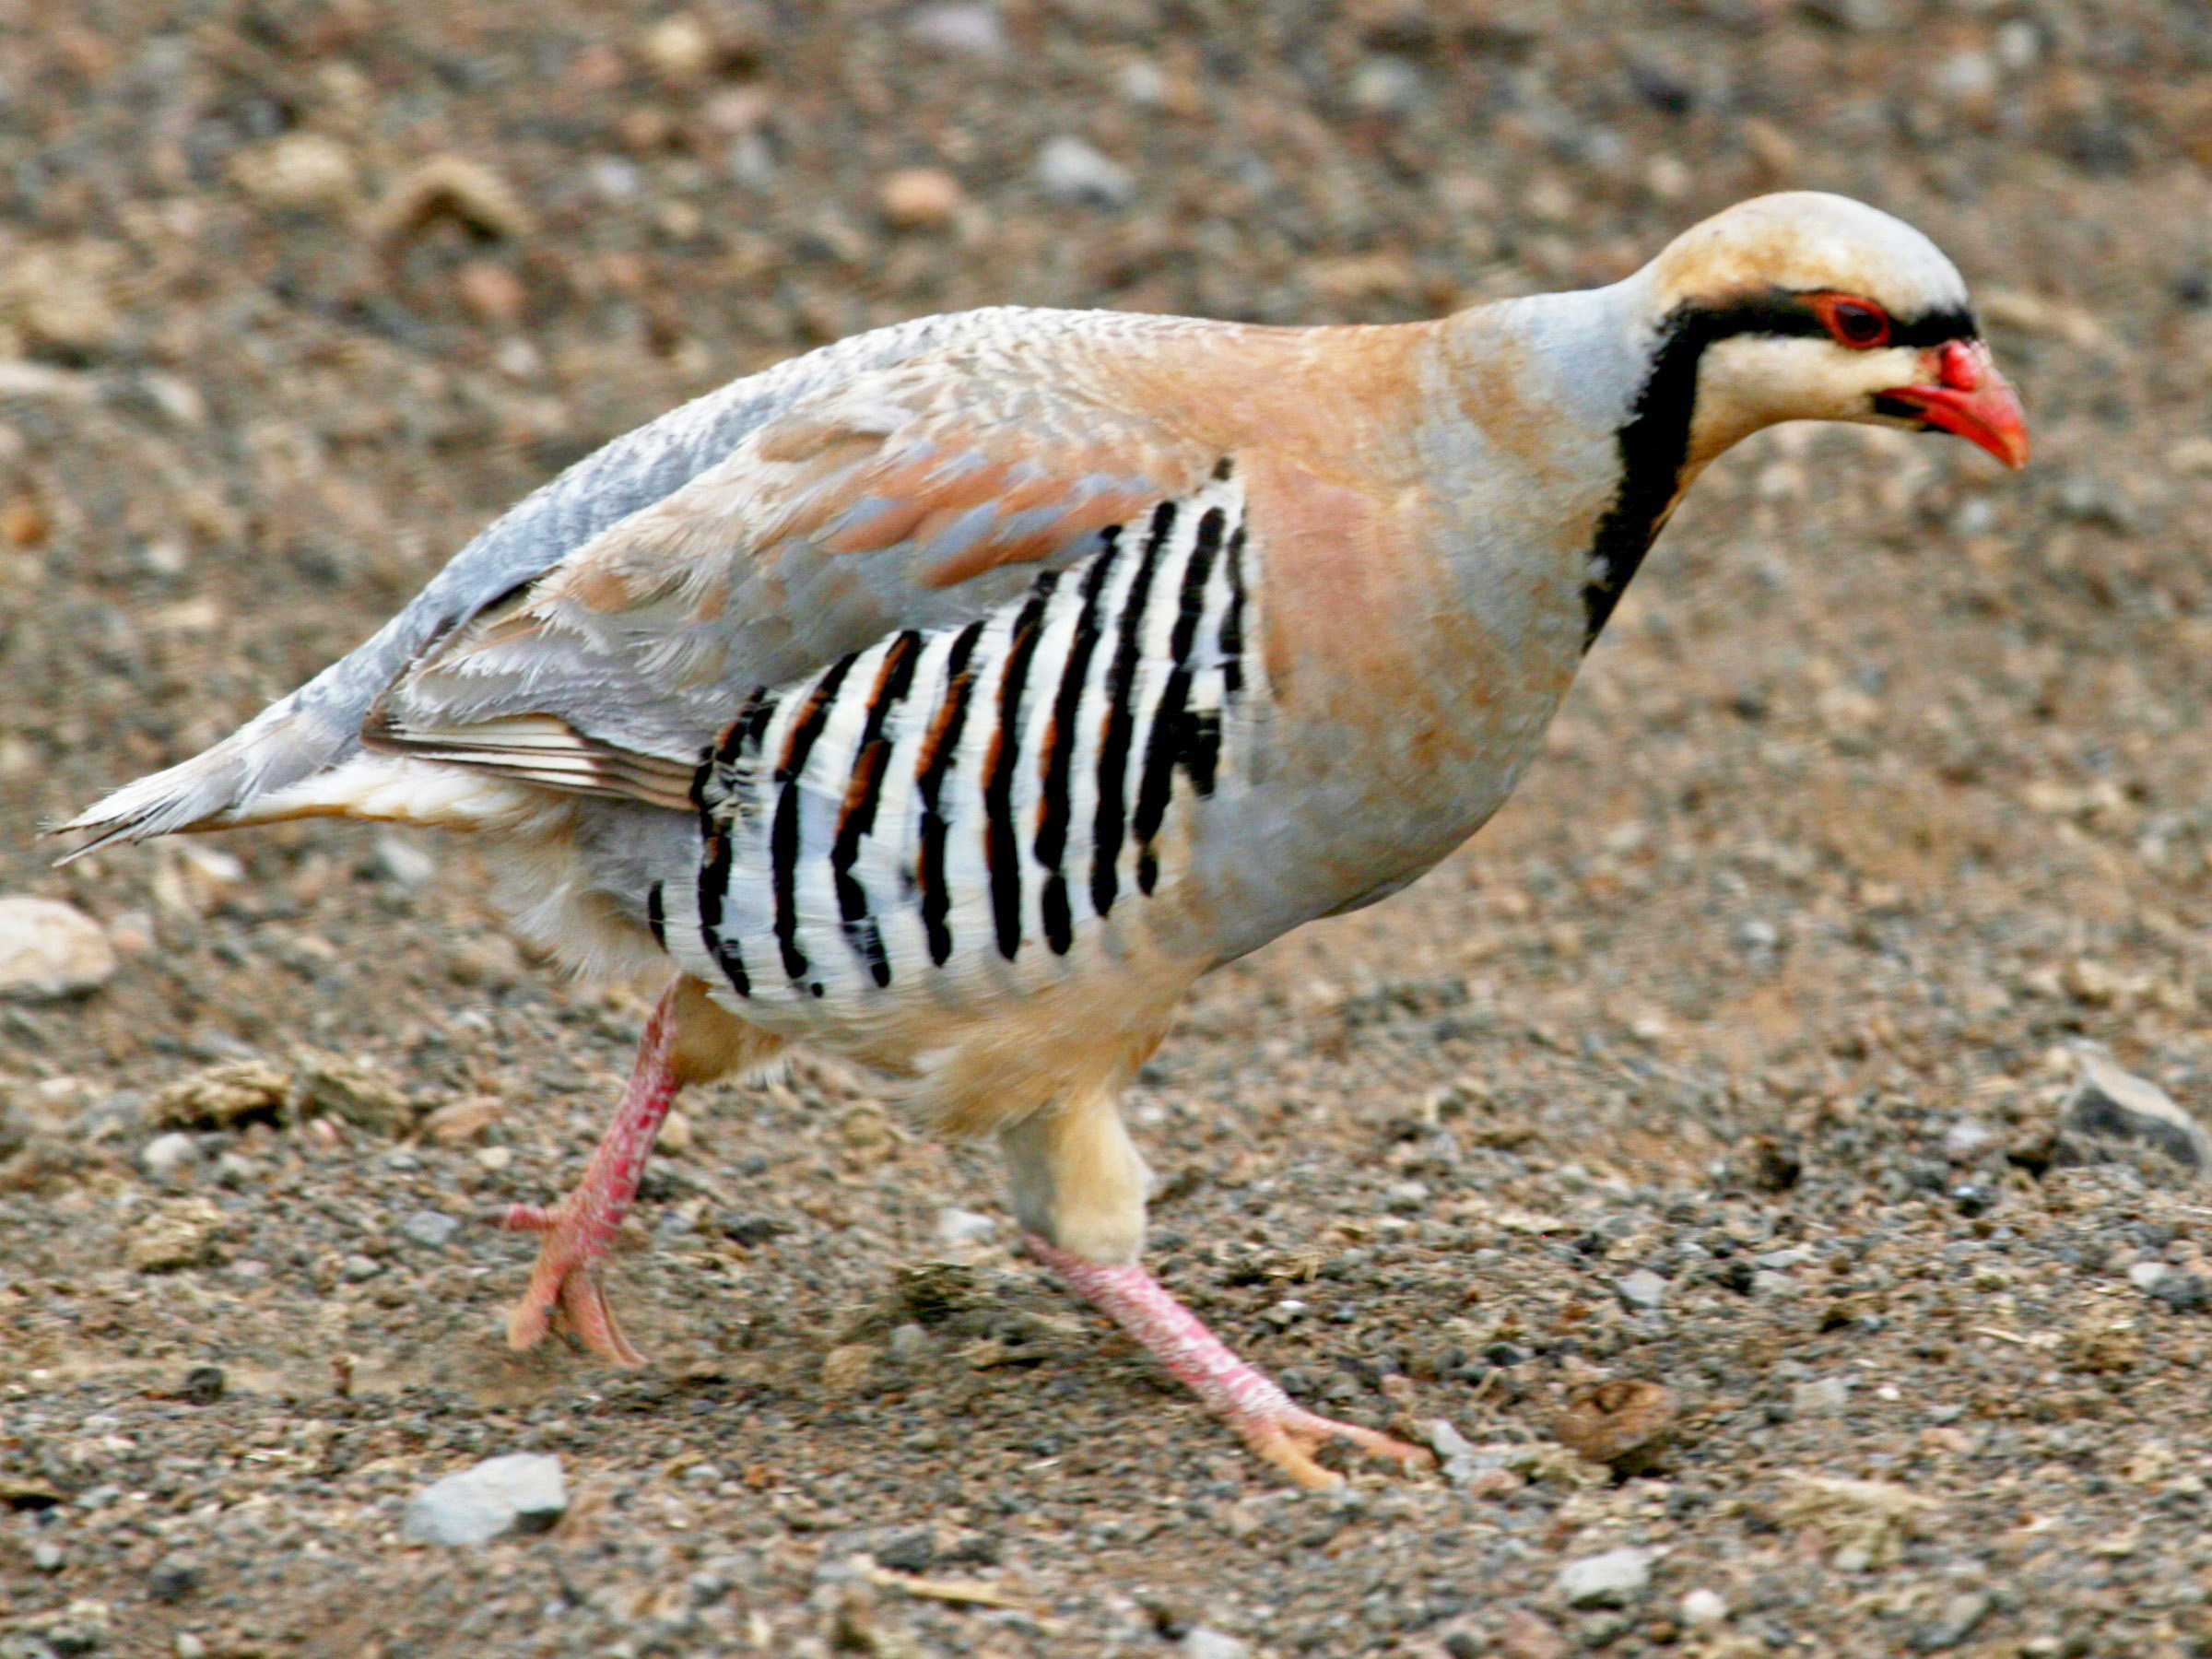 http://upload.wikimedia.org/wikipedia/commons/c/c8/Chukar_Partridge_RWD.jpg